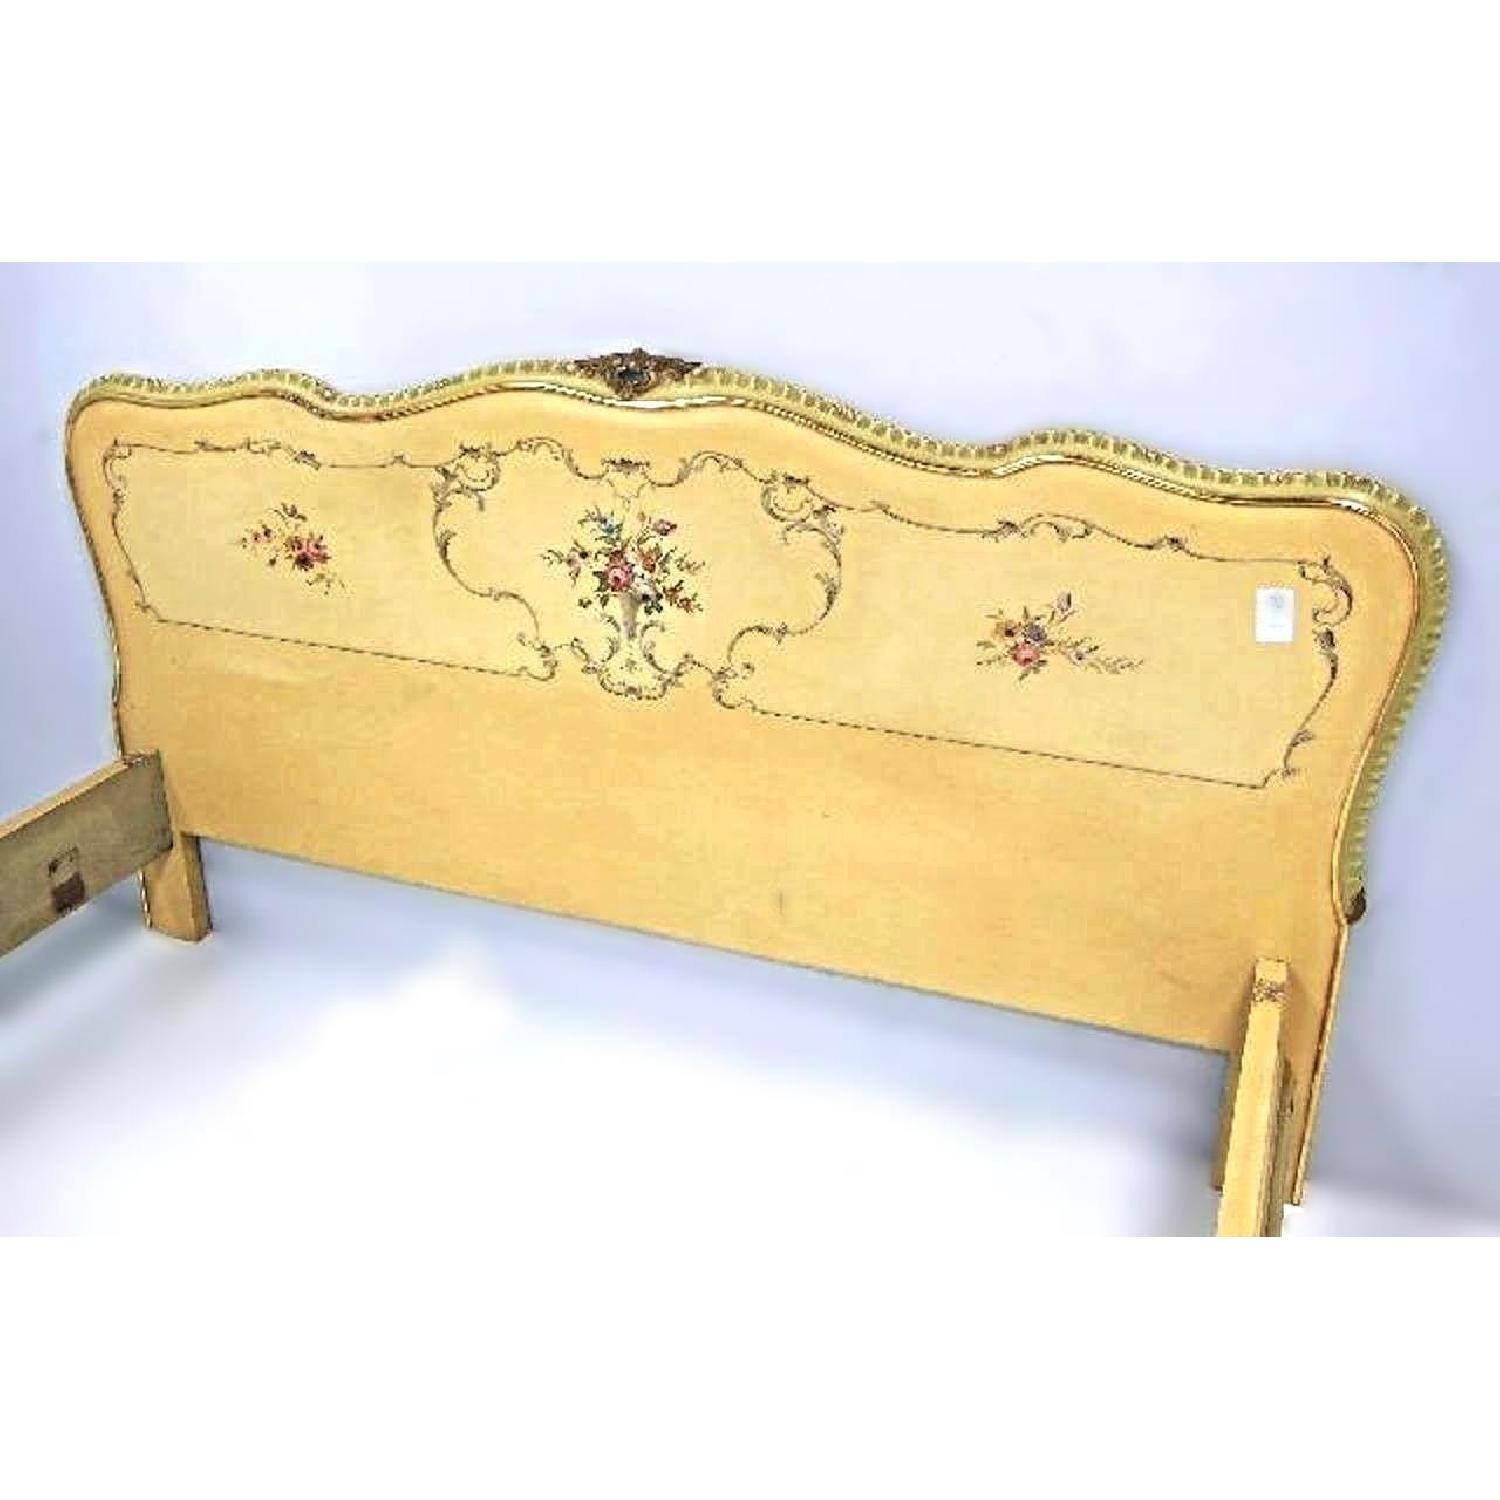 Antique florentine queen king bed frame w headboard aptdeco - Design within reach bed frame ...